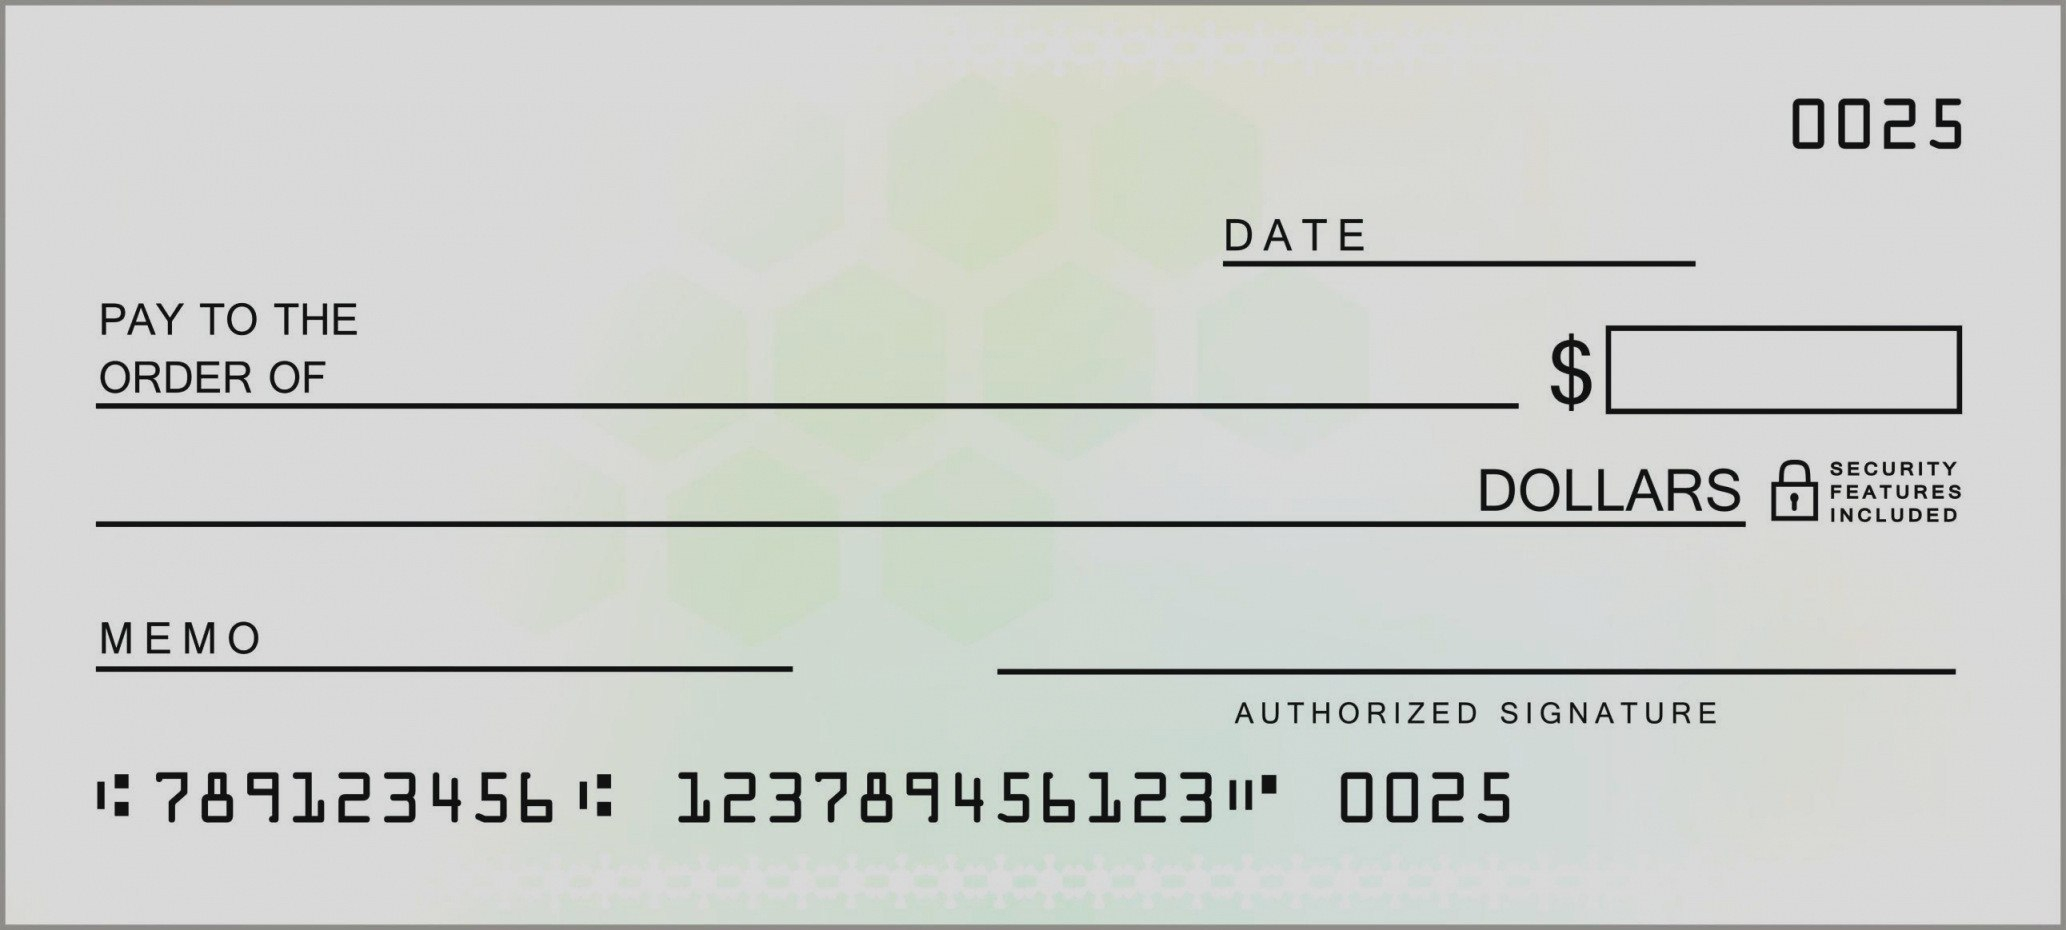 Fake Blank Check Template Cheque Free Awesome Payroll Templates With Regard To Large Blank Cheque Template